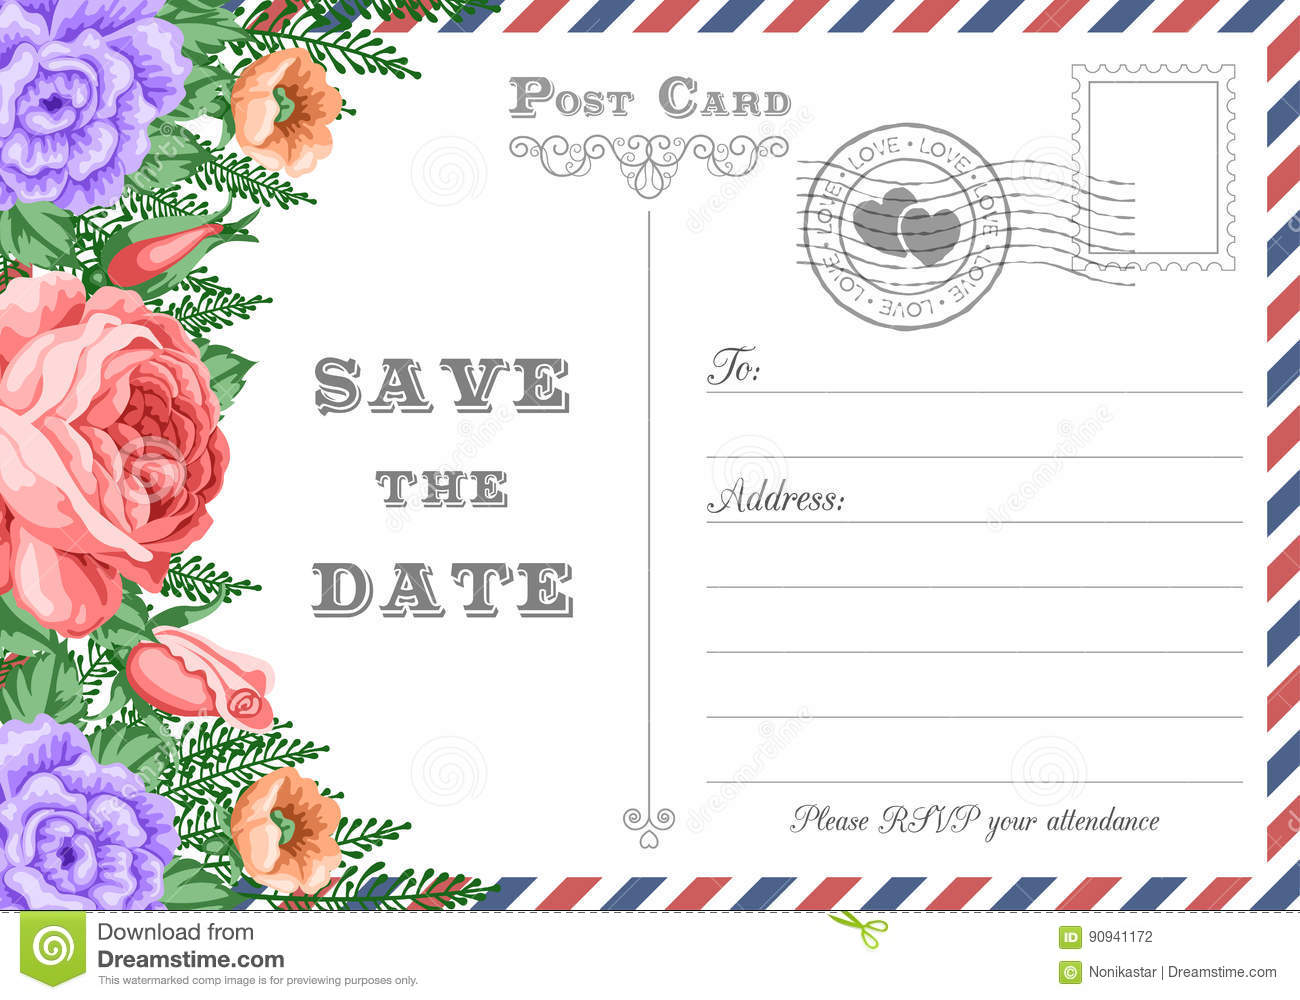 Postcard Save the Date stock vector. Illustration of floral - 90941172